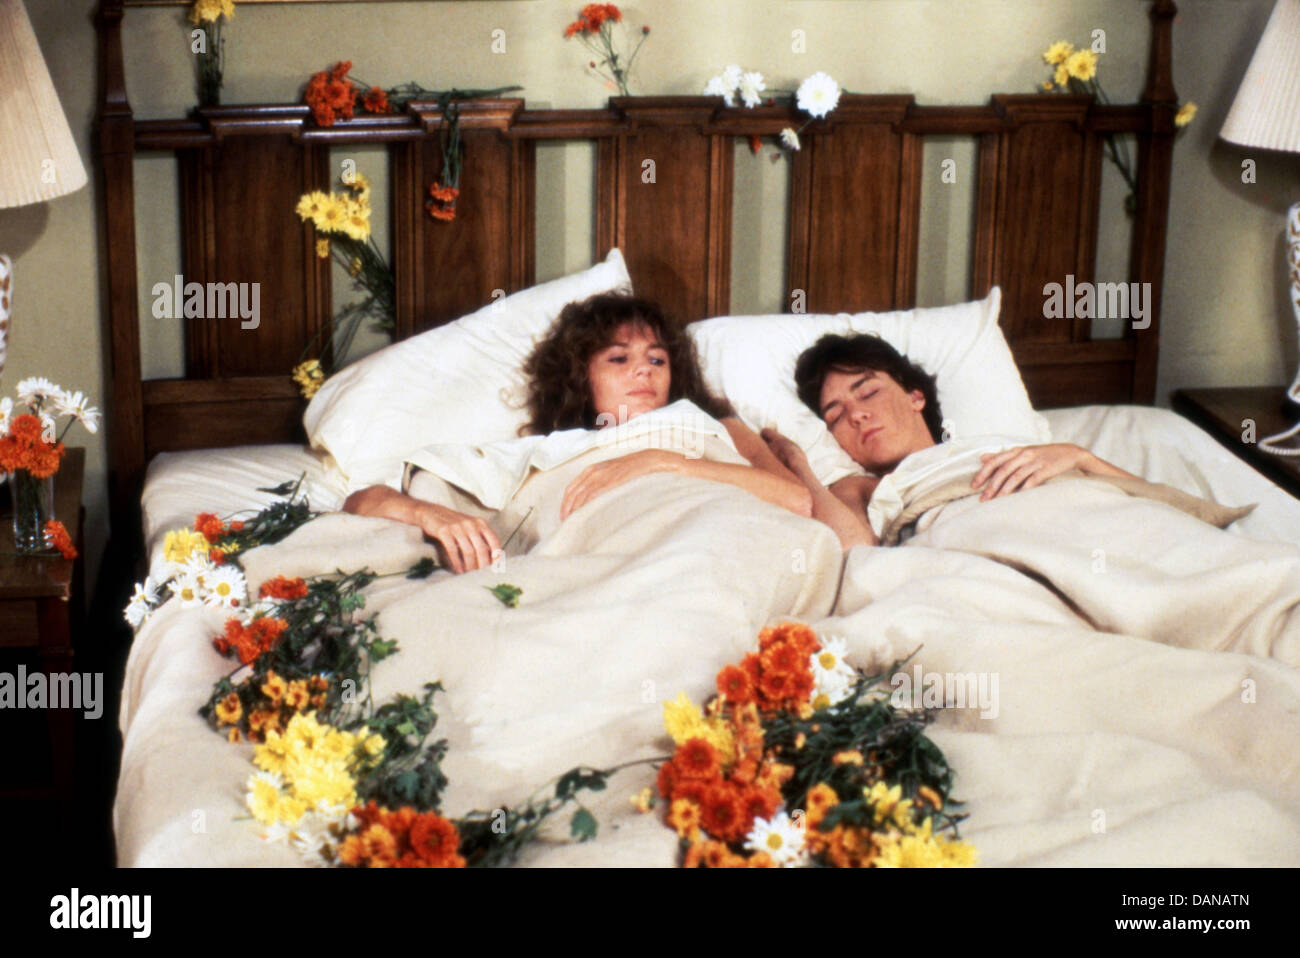 CLASS (1983) JACQUELINE BISSET, ANDREW MCCARTHY, LEWIS JOHN CARLINO (DIR) CLS 001 MOVIESTORE COLLECTION LTD - Stock Image